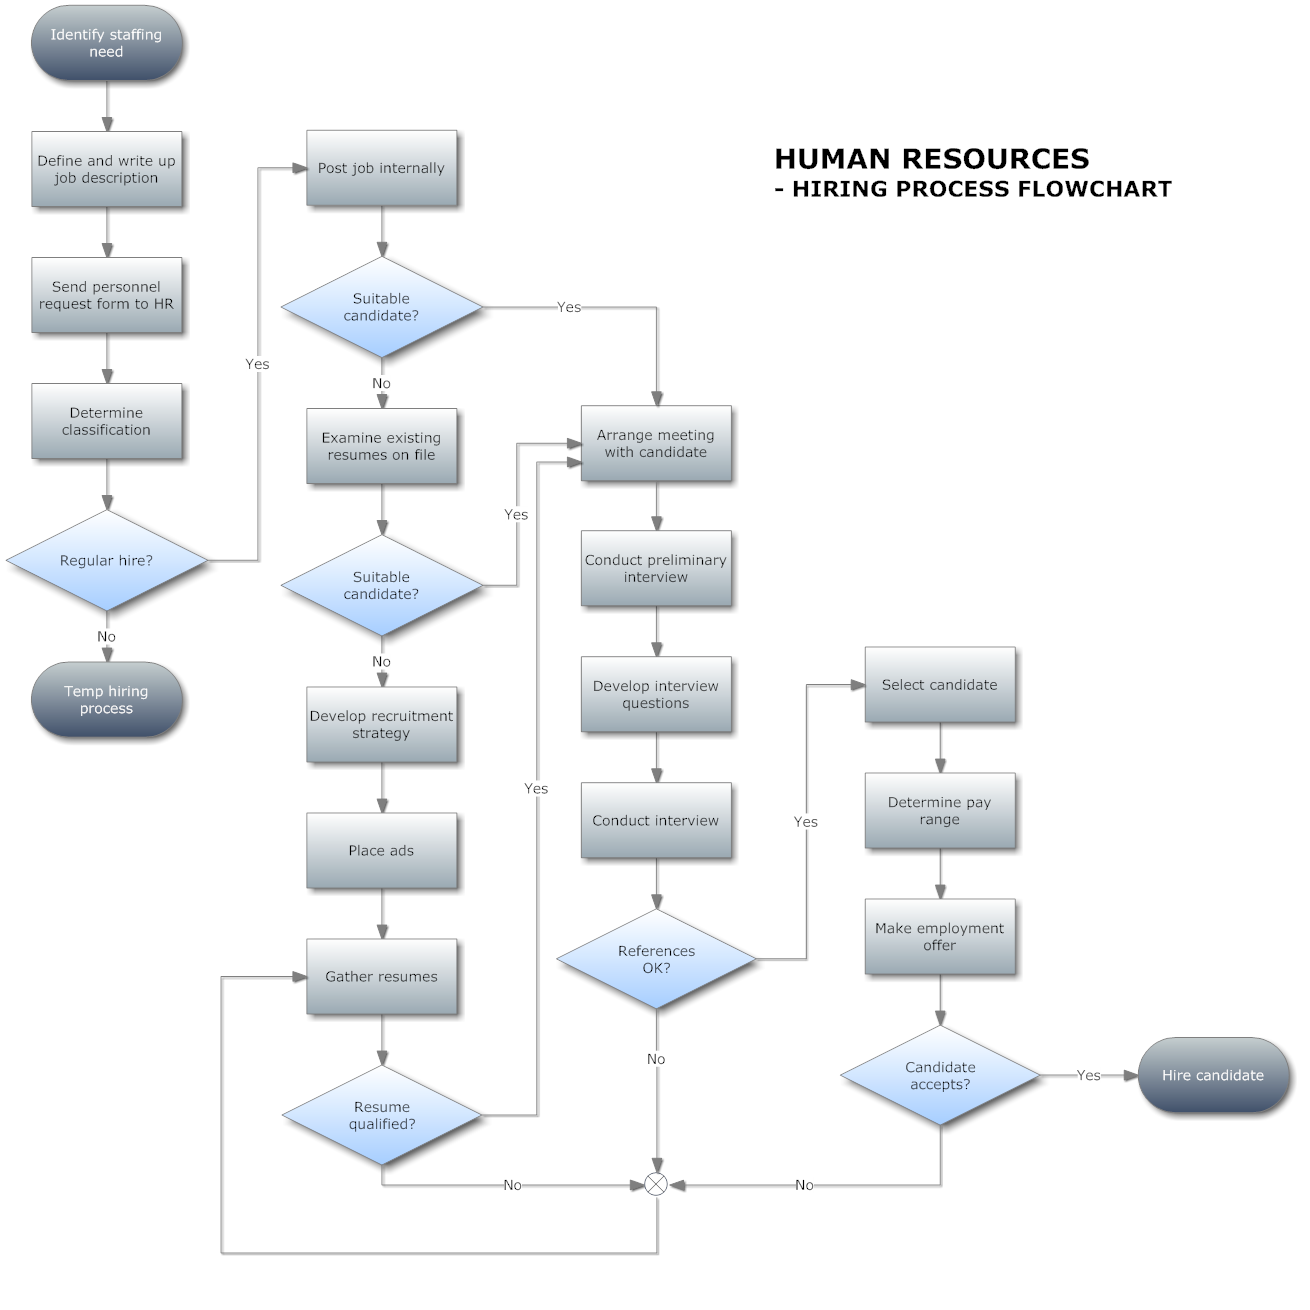 describe a flowchart student centered resources hiring process human resources hiring flow chart flowchart example human resources hiring